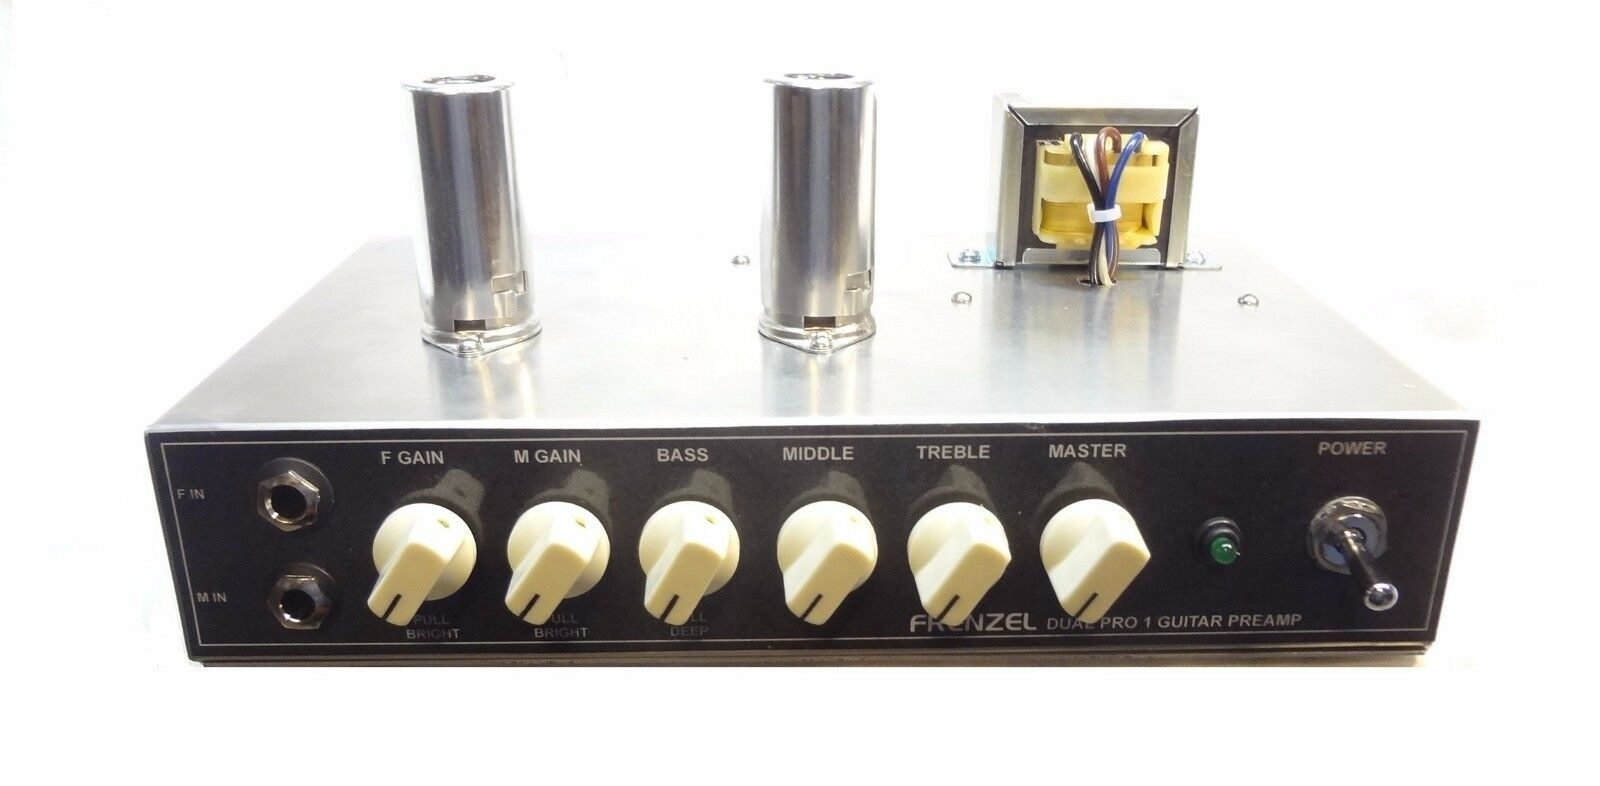 FRENZEL Dual Channel Channel Channel FM-DP1 Guitar Tube Preamp 223af0